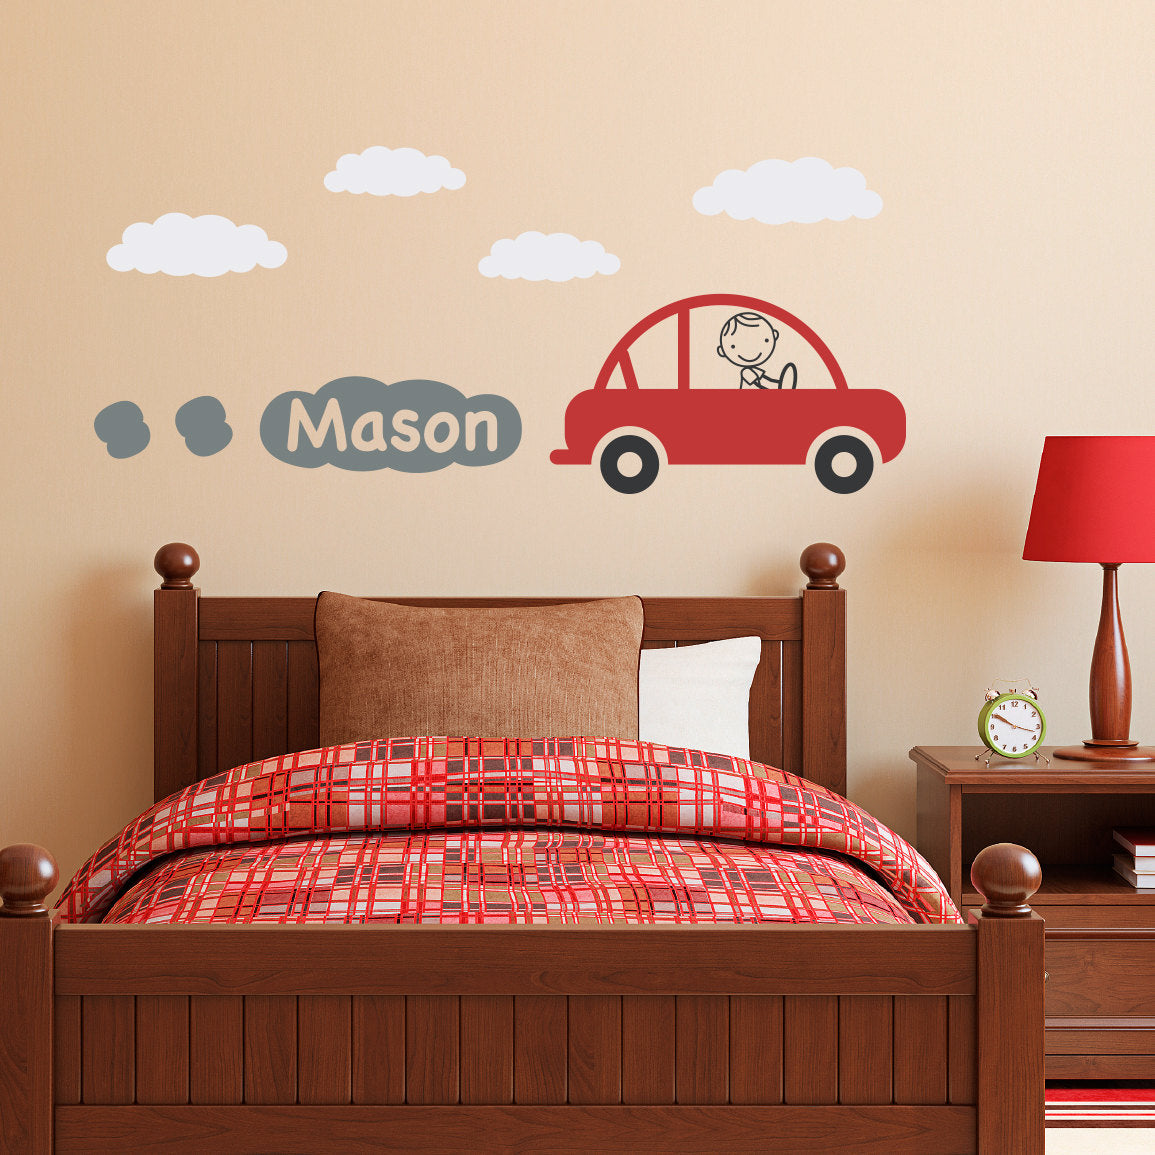 Personalized car decal with boys name boy bedroom wall sticker personalized car decal with boys name boy bedroom wall sticker vinyl wall decal children wall decals amipublicfo Images